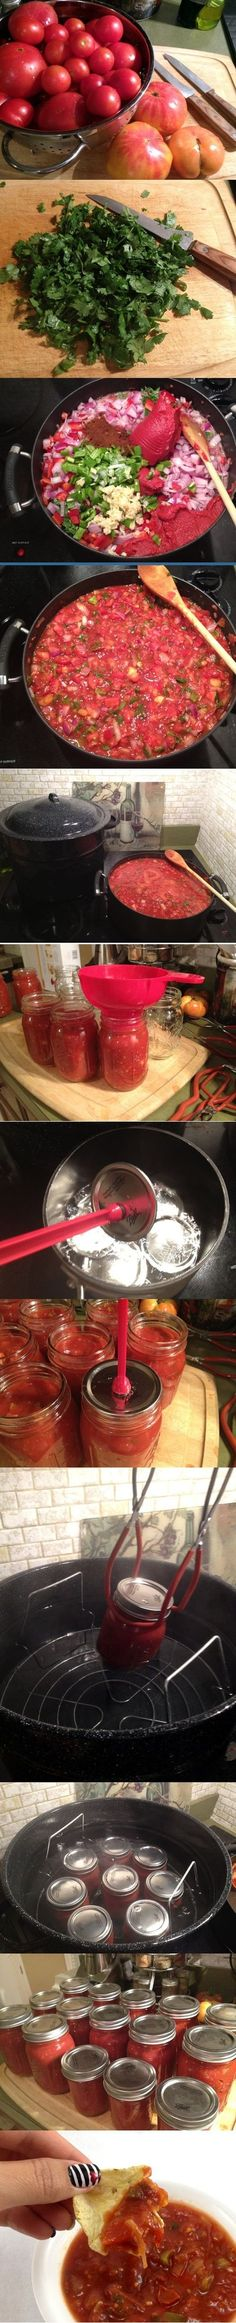 Making Homemade Salsa and Canning Step-by-Step How To Instructions.my DIL makes wonderful homemade canned salsa! Canning Homemade Salsa, Canning Recipes, Canning Tips, Pesto, Do It Yourself Food, Canned Food Storage, Home Canning, Food Hacks, Mexican Food Recipes